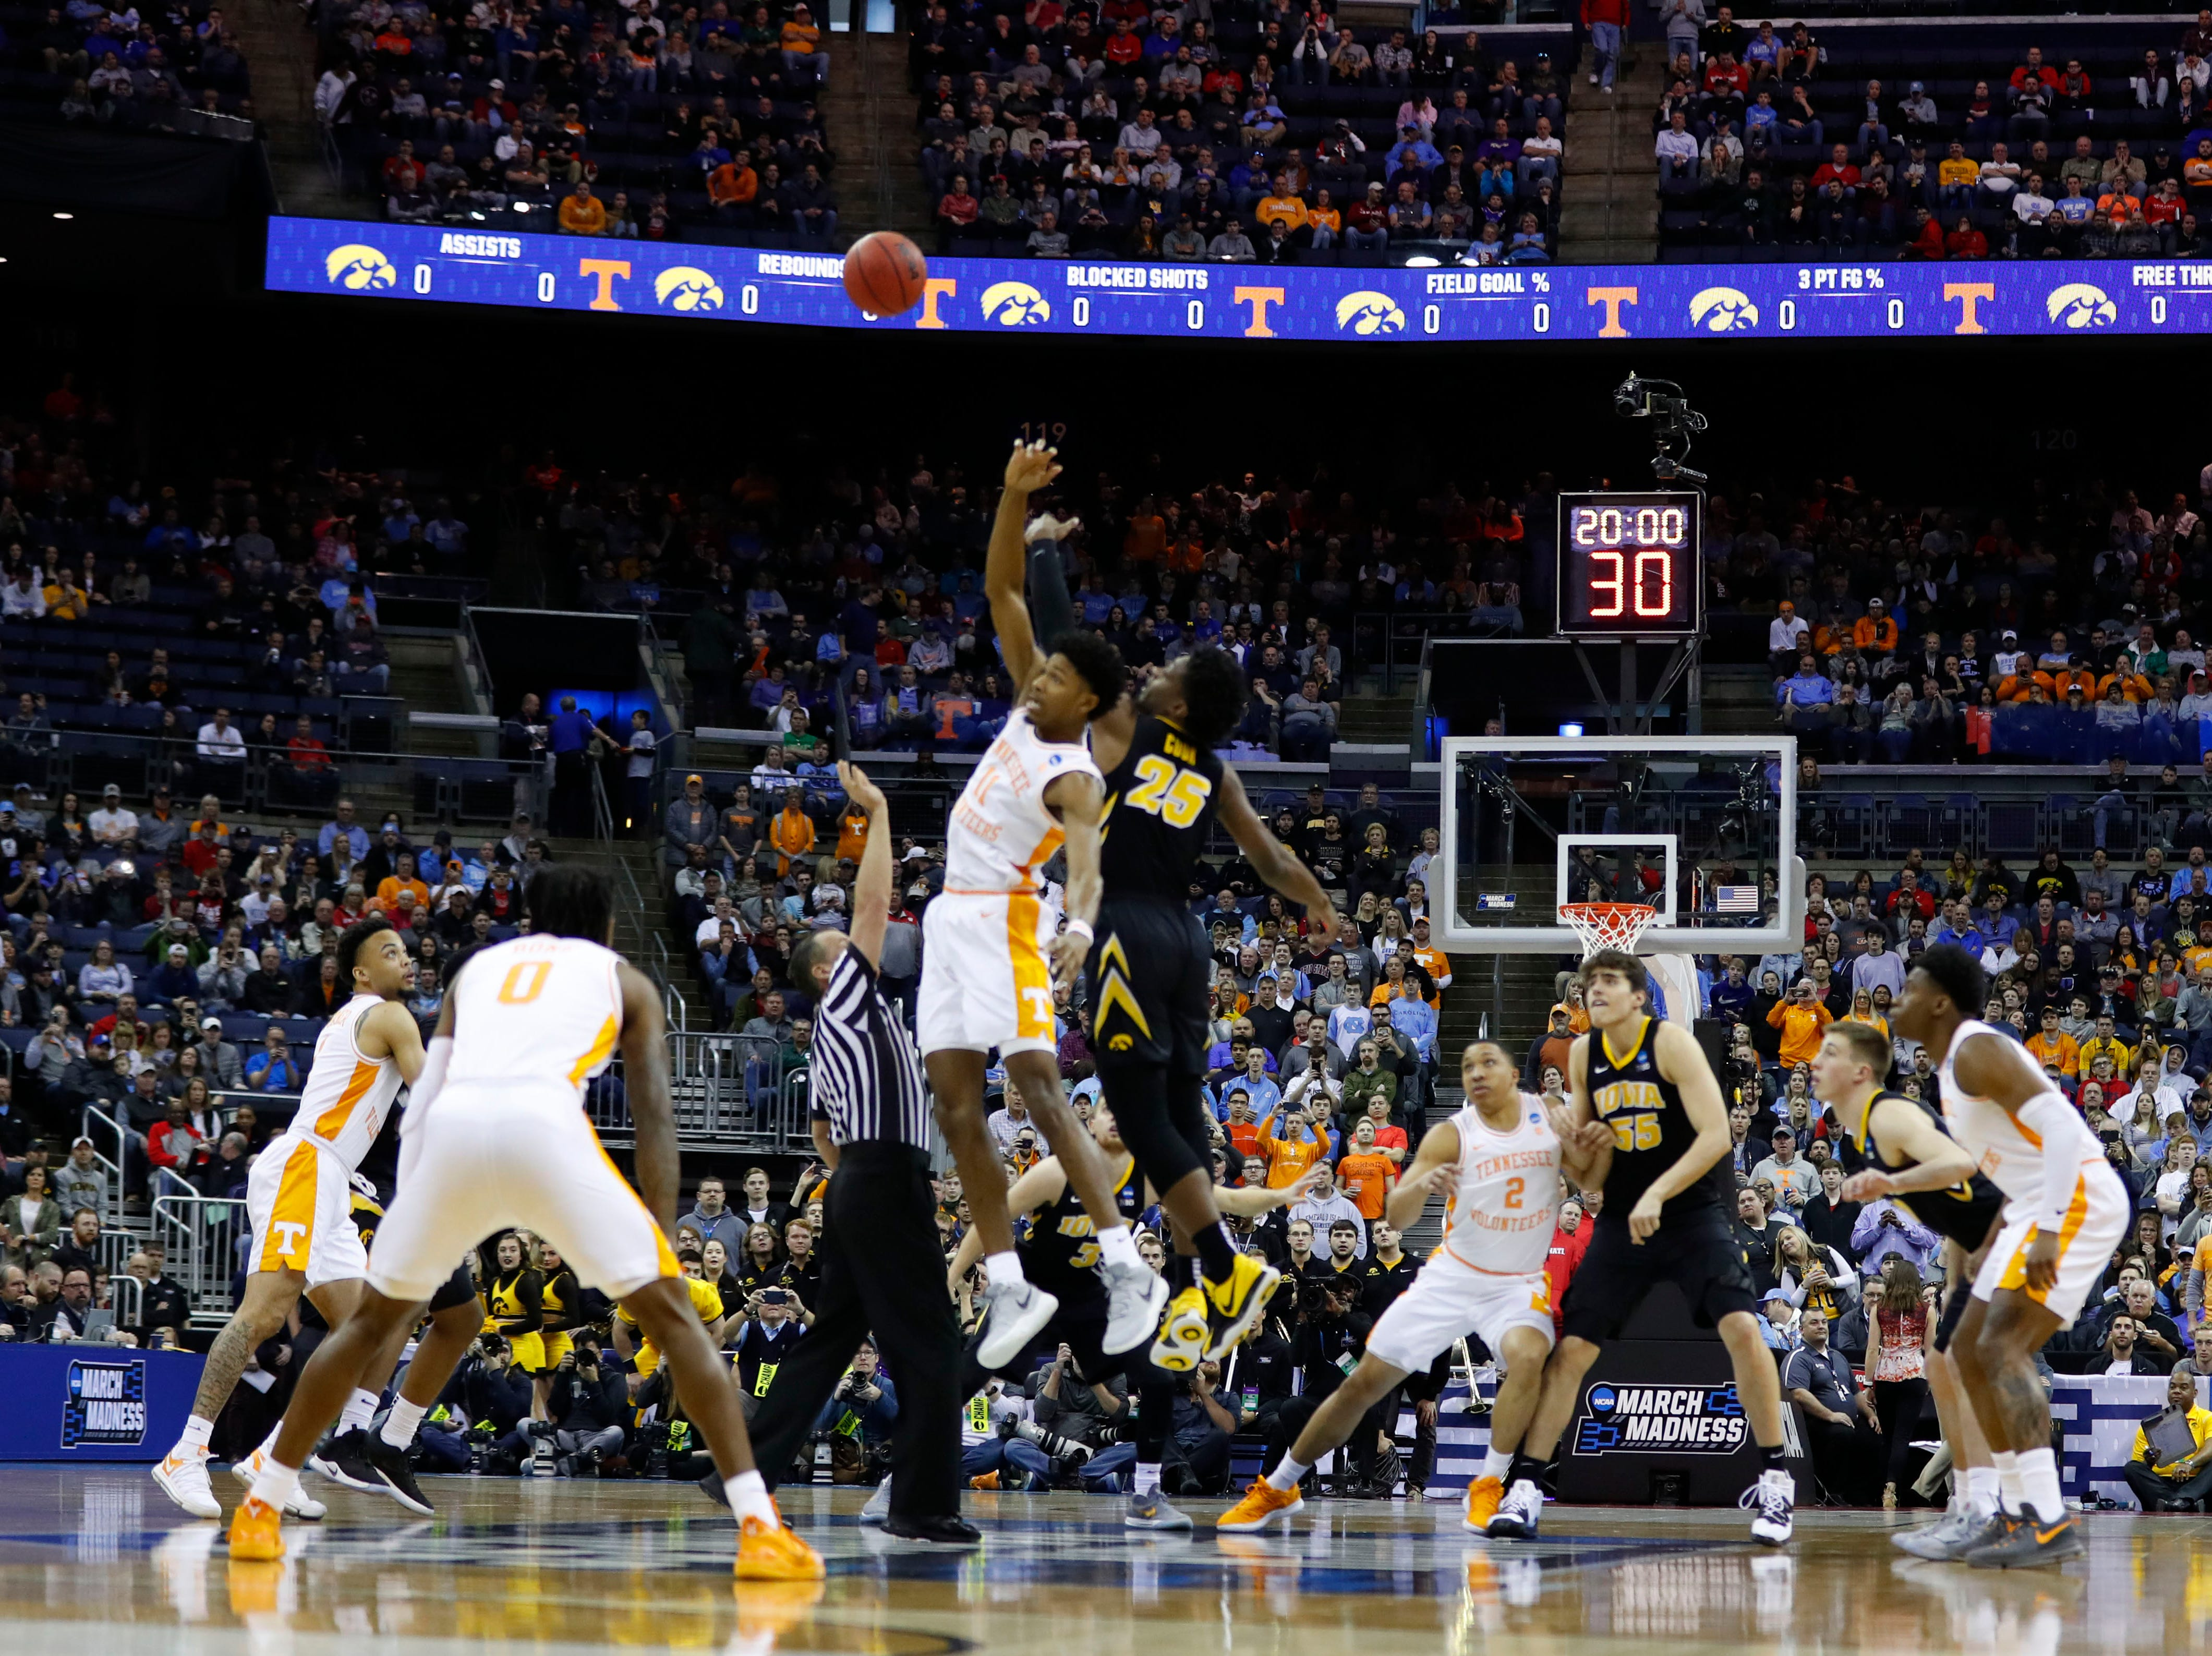 General view go the tip off in the game between Iowa Hawkeyes and Tennessee Volunteers in the second round of the 2019 NCAA Tournament at Nationwide Arena.